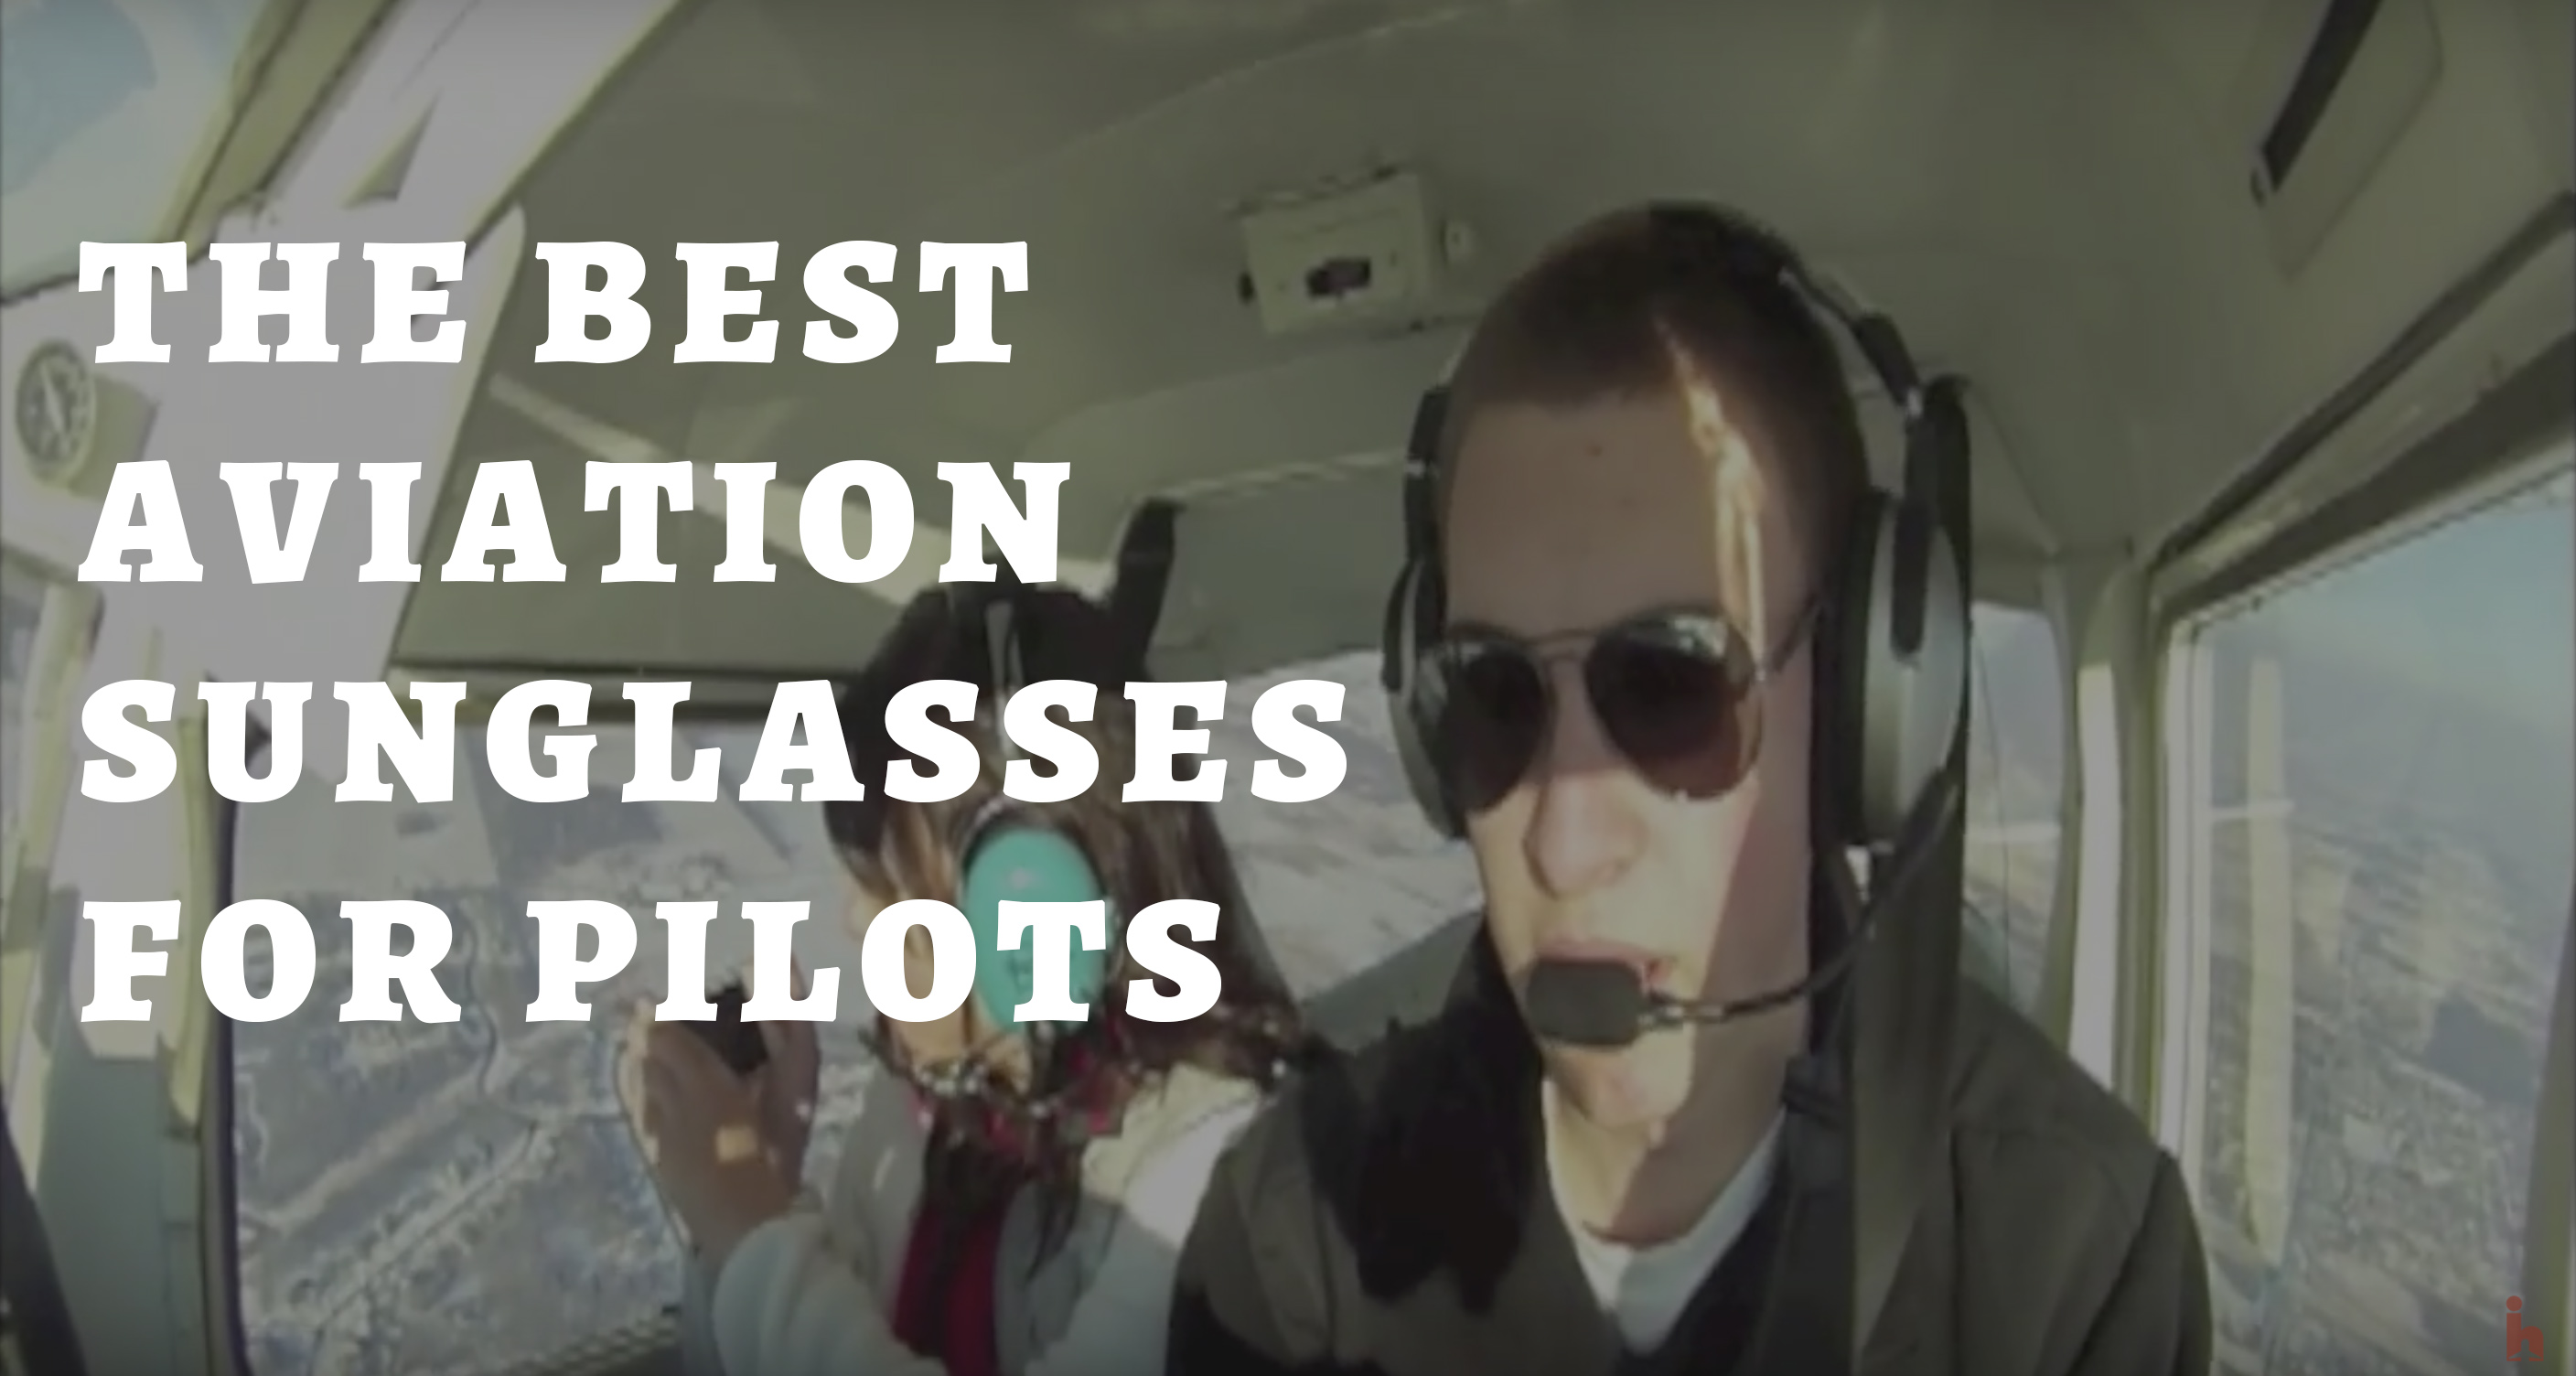 Best Sunglasses For Aviation  best aviation sunglasses for pilots pilot ian